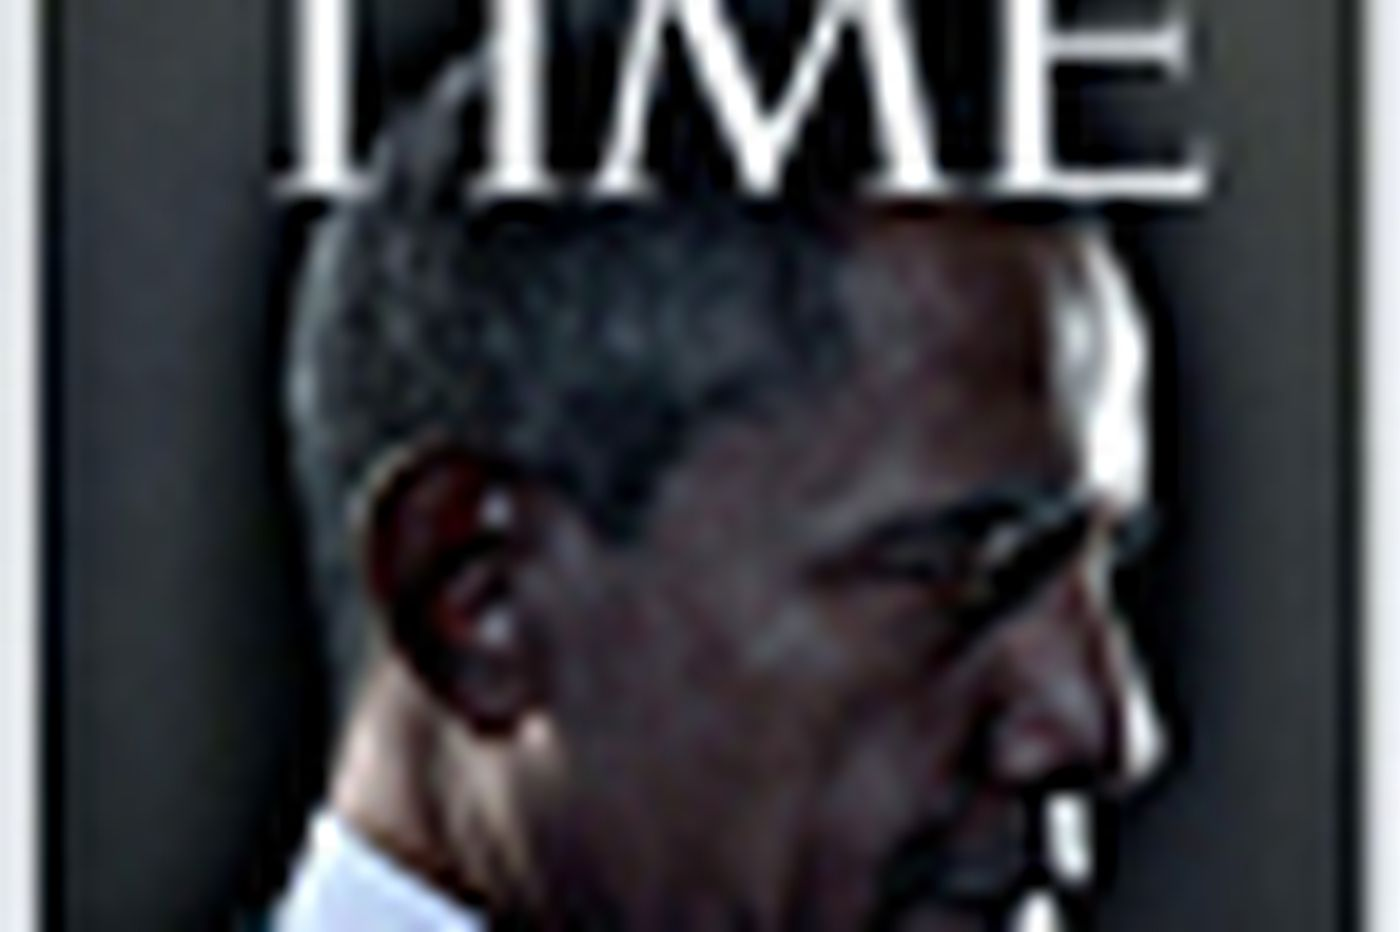 Sideshow: Obama joins Time's elite